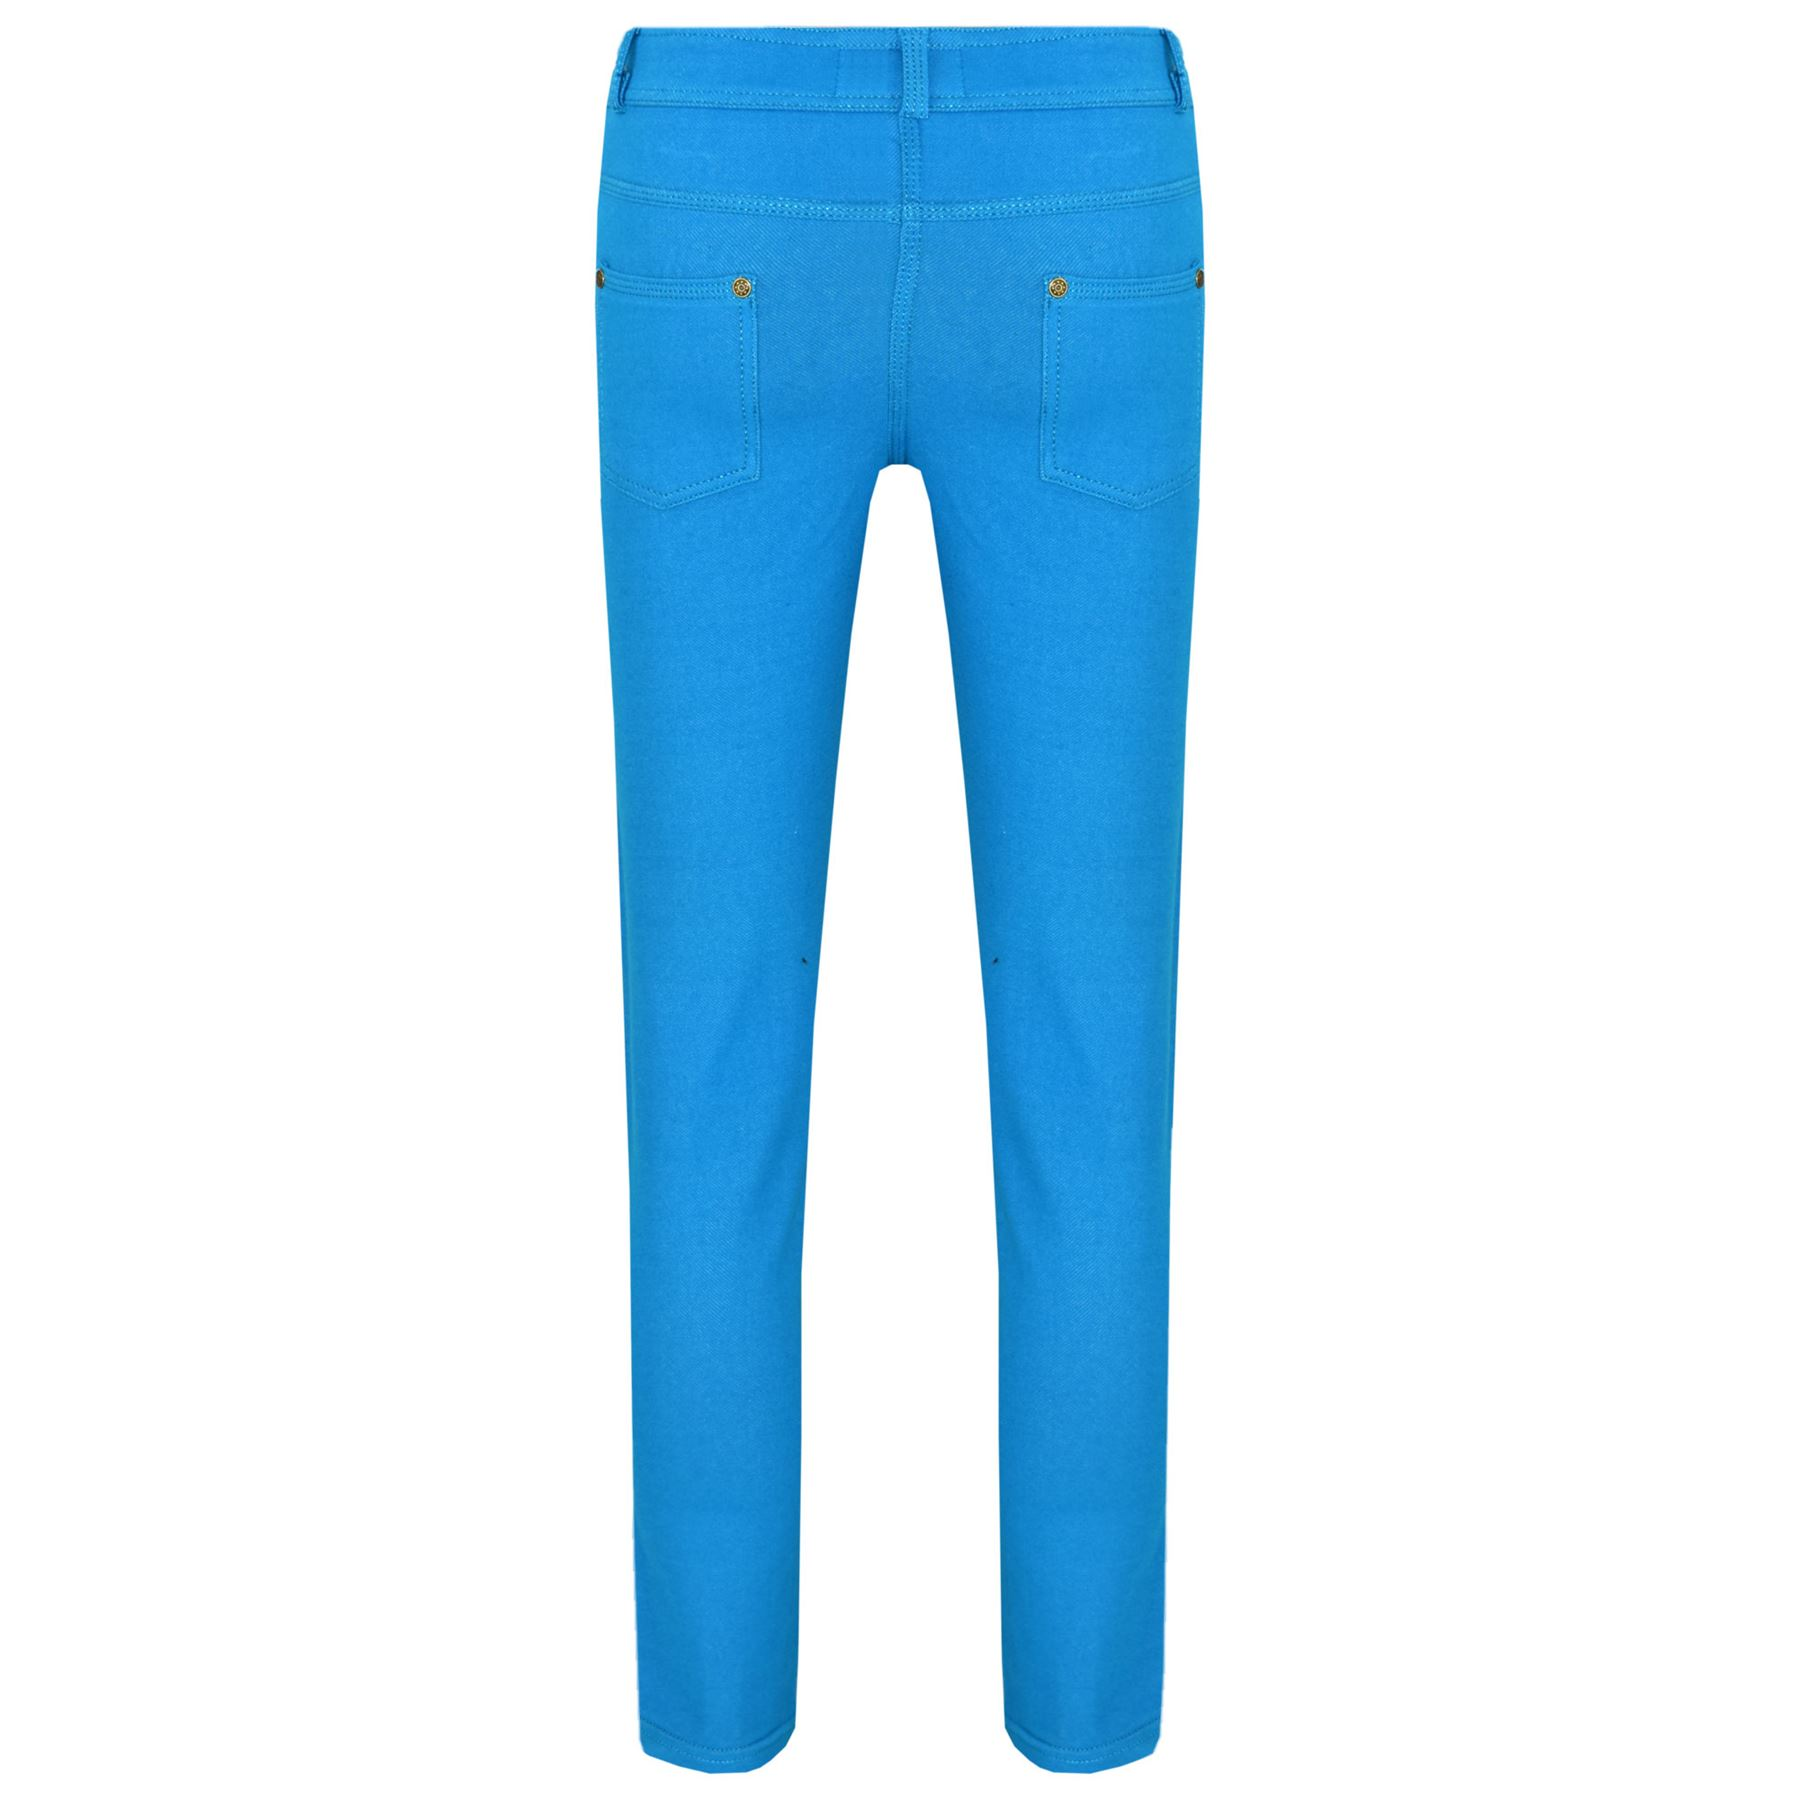 Girls Skinny Jeans Kids Stretchy Jeggings Fit Pants Coloured Trousers 5-13 Years